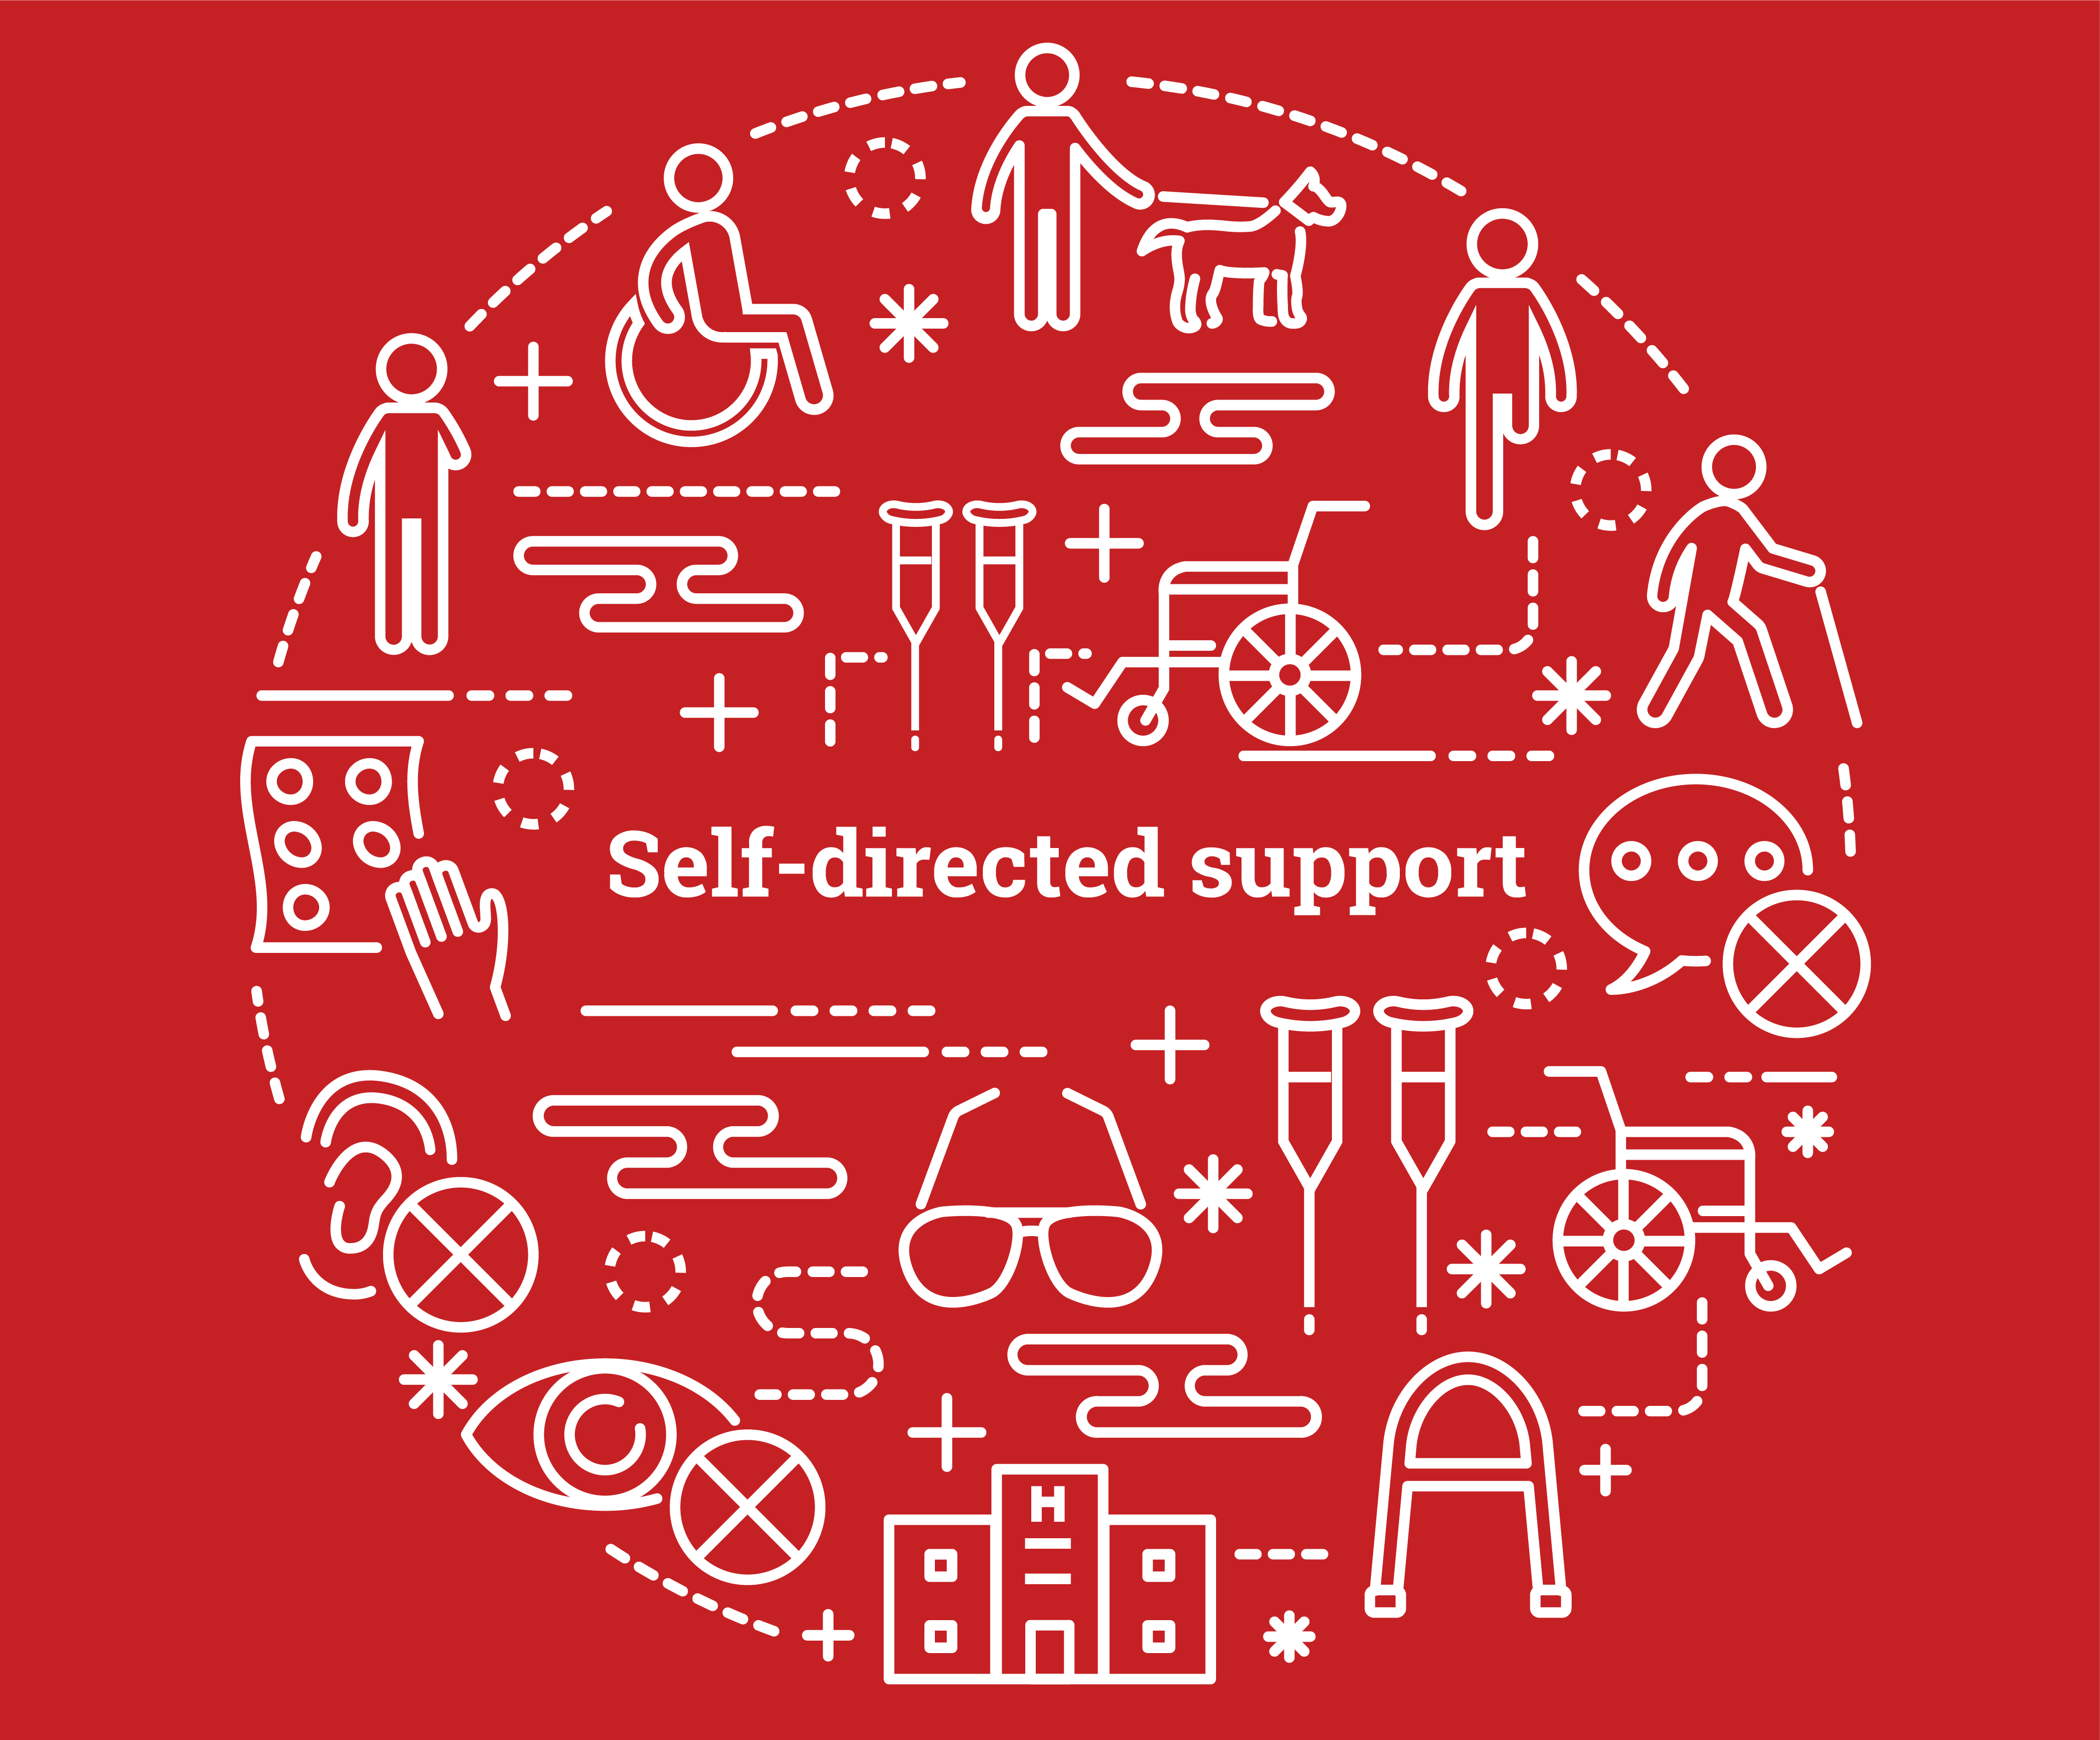 Circular shape on a red background, with the caption 'Self-directed Support' in the centre